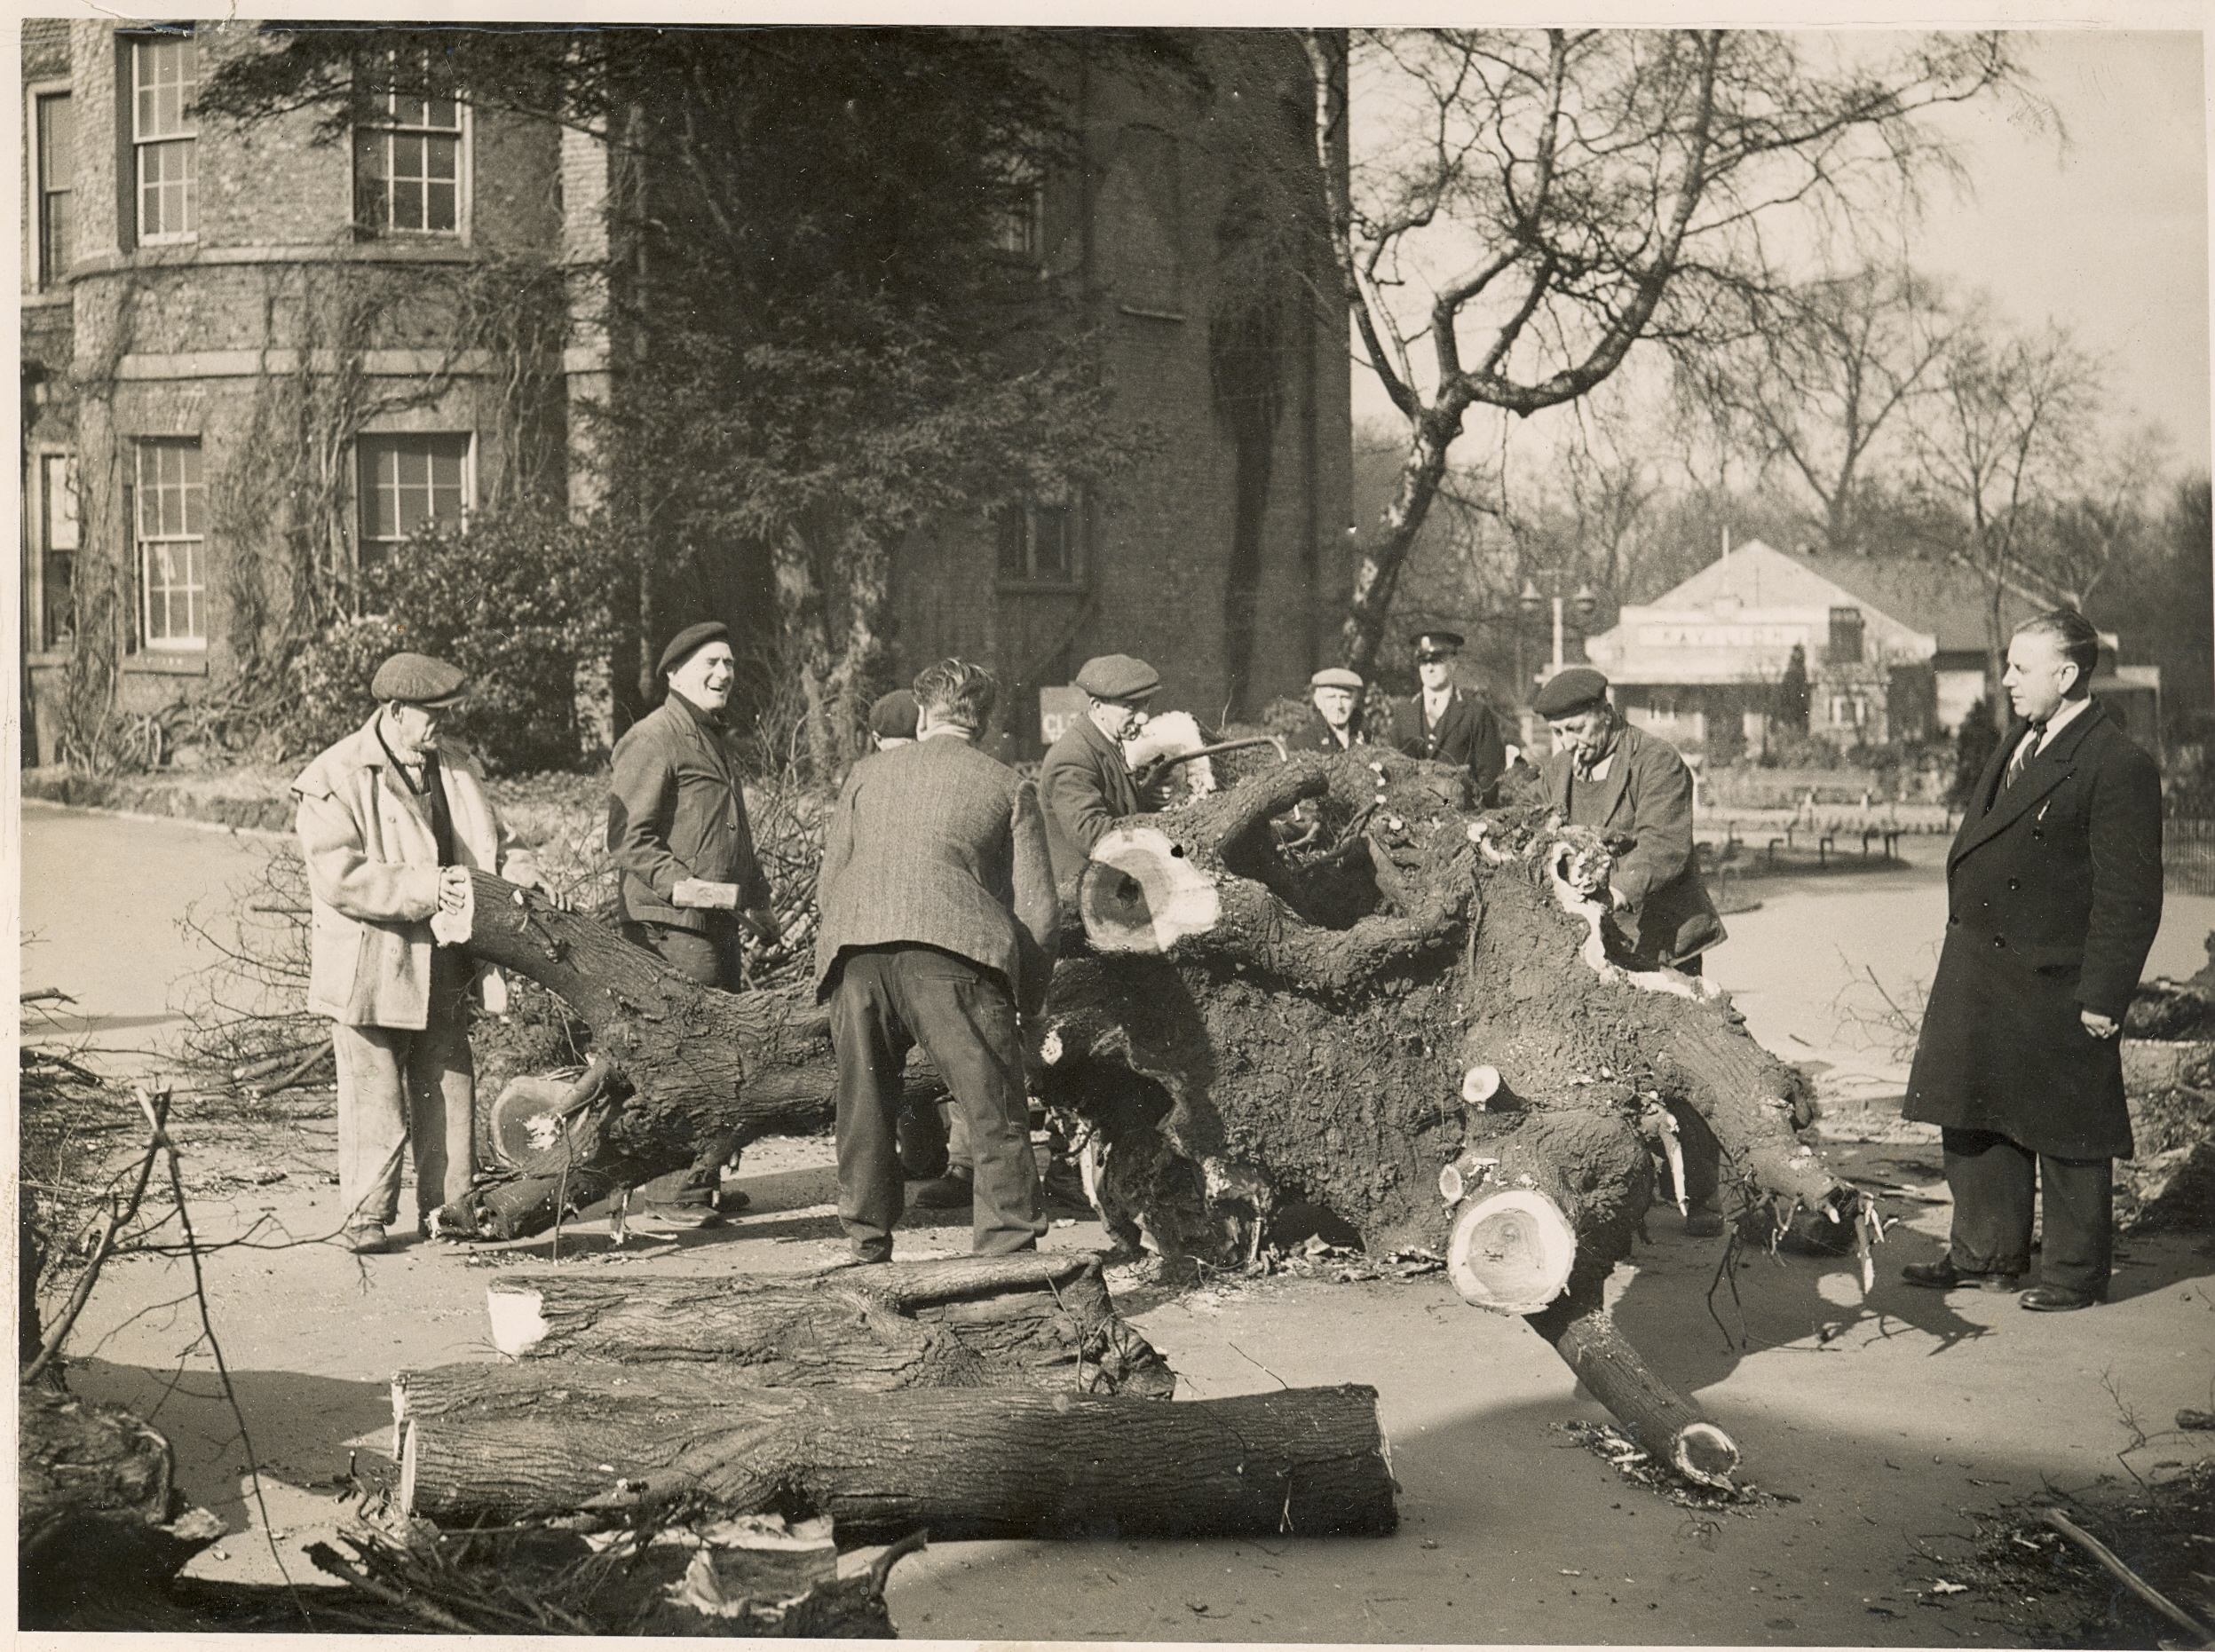 Whilst leading workshops for the Lloyd Park Heritage group in Walthamstow we re-anacted several pictures from the archive.    This image was taken following gale-damage in 1949. You can see below a report from the time and our re-anactment for the 21st century: notice how the Health and Safety act has effected working conditions. Also, mixed gender and more multi-cultural working habits as well as a strict no-smoking policy have changed the workplace significantly in 65 years.    IMAGE CREDIT: Vestry House Museum, London Borough of Waltham Forest